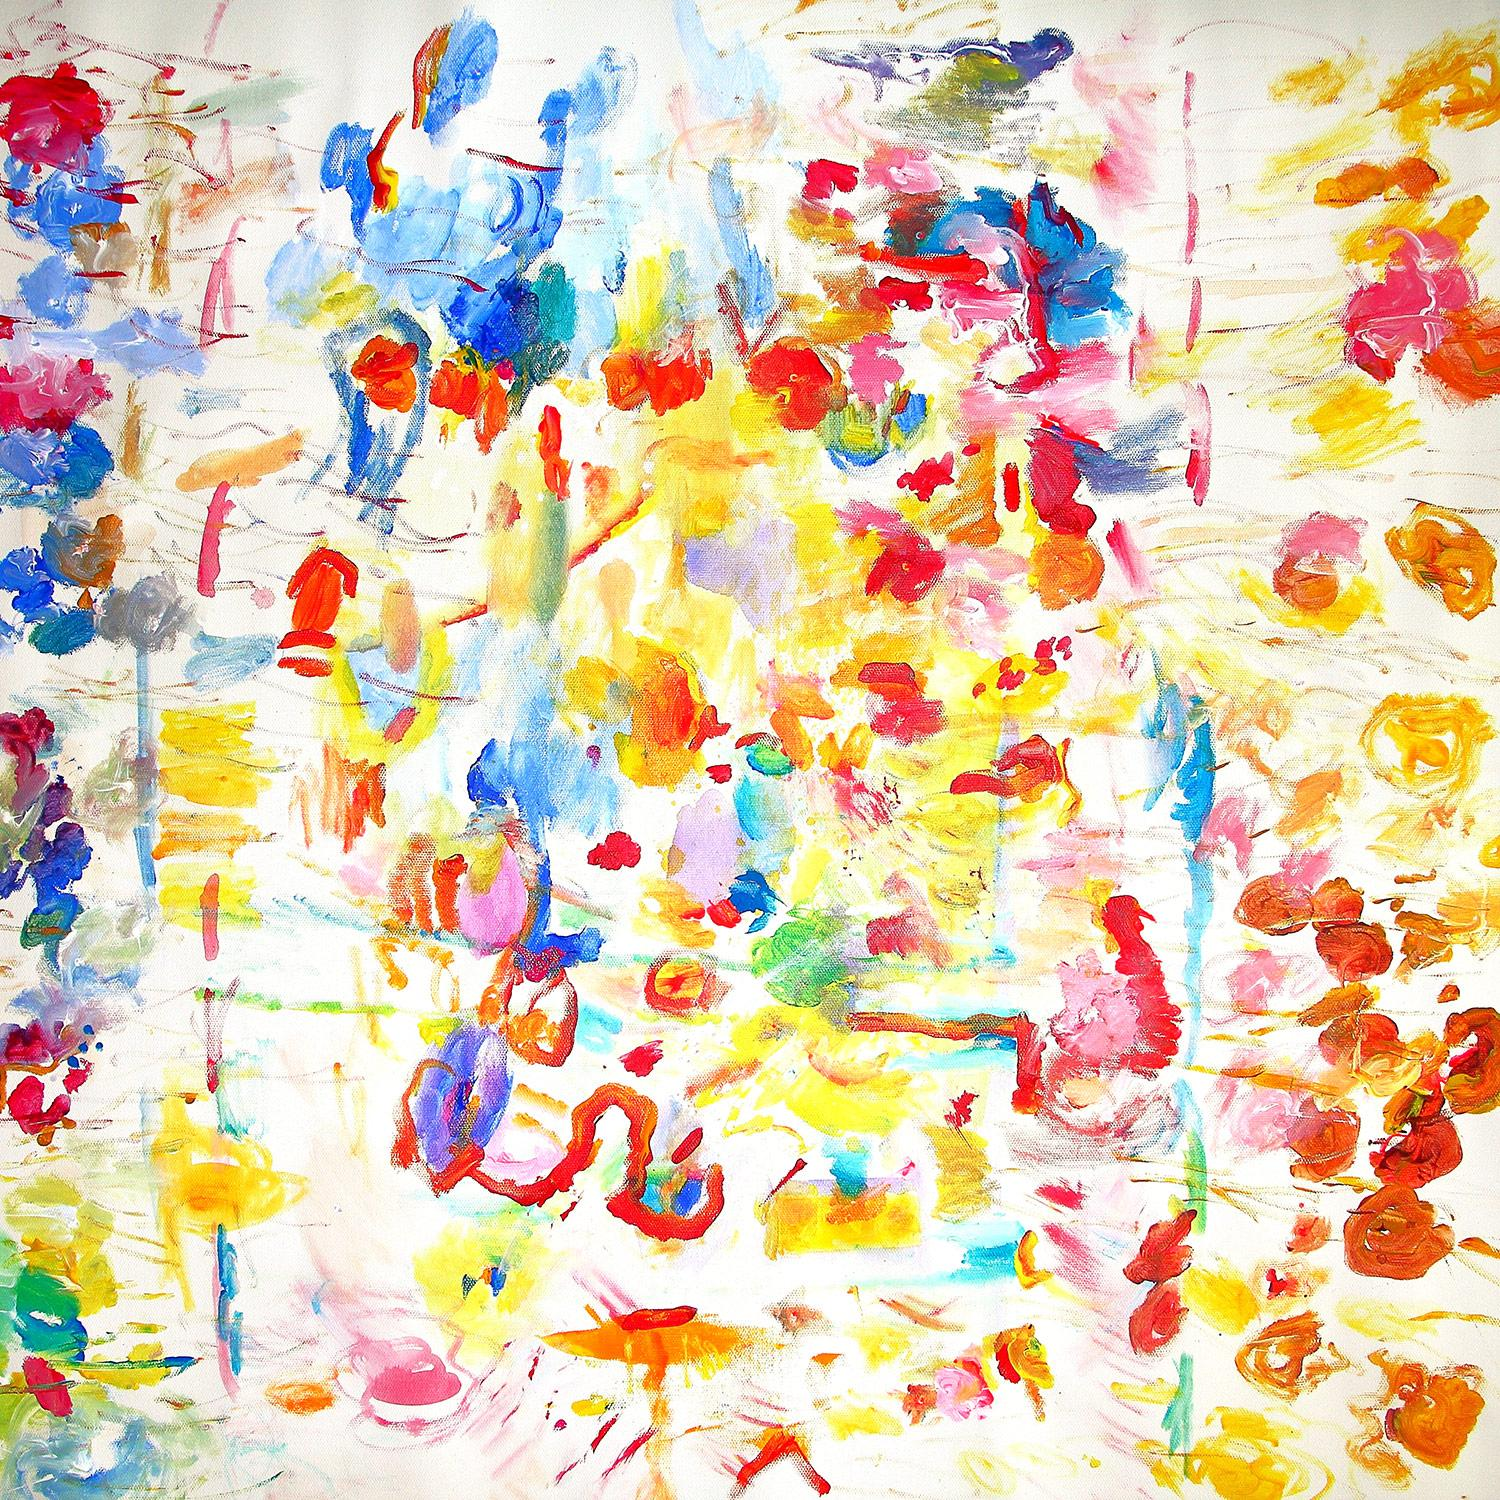 Patience, Kindness And Love, Abstract Expressionistic Painting